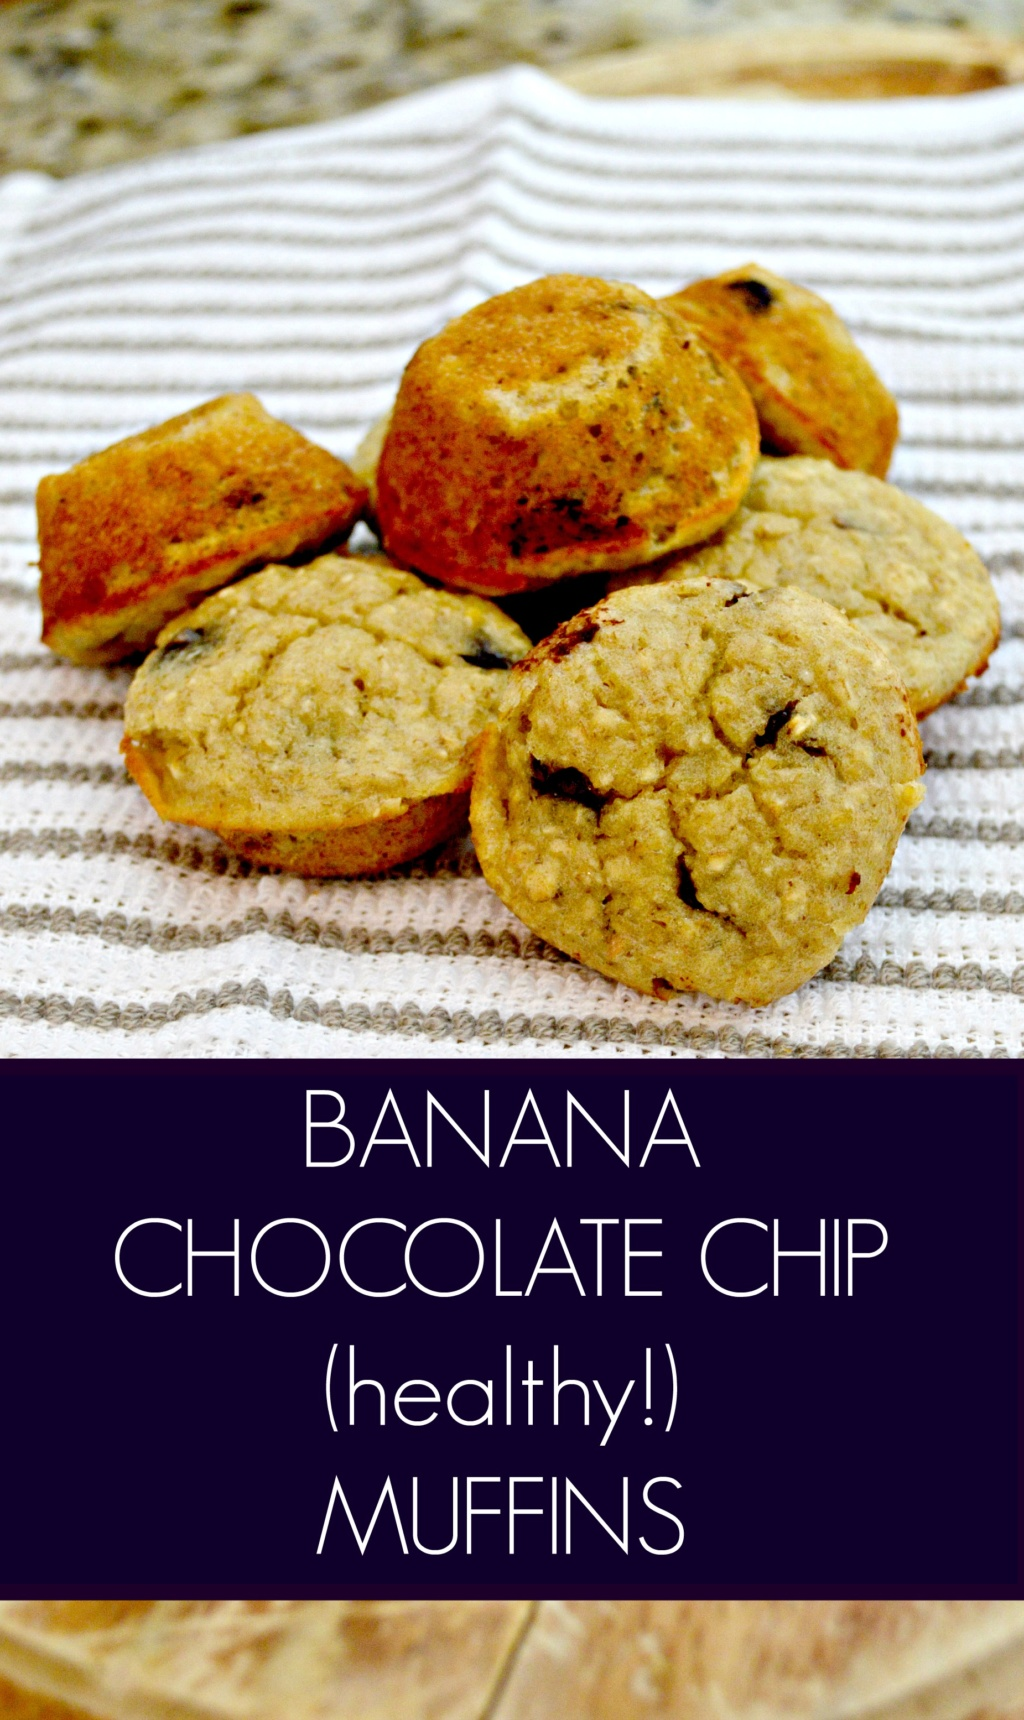 Bone Broth Update III – Healthy Banana Chocolate Chip Muffins